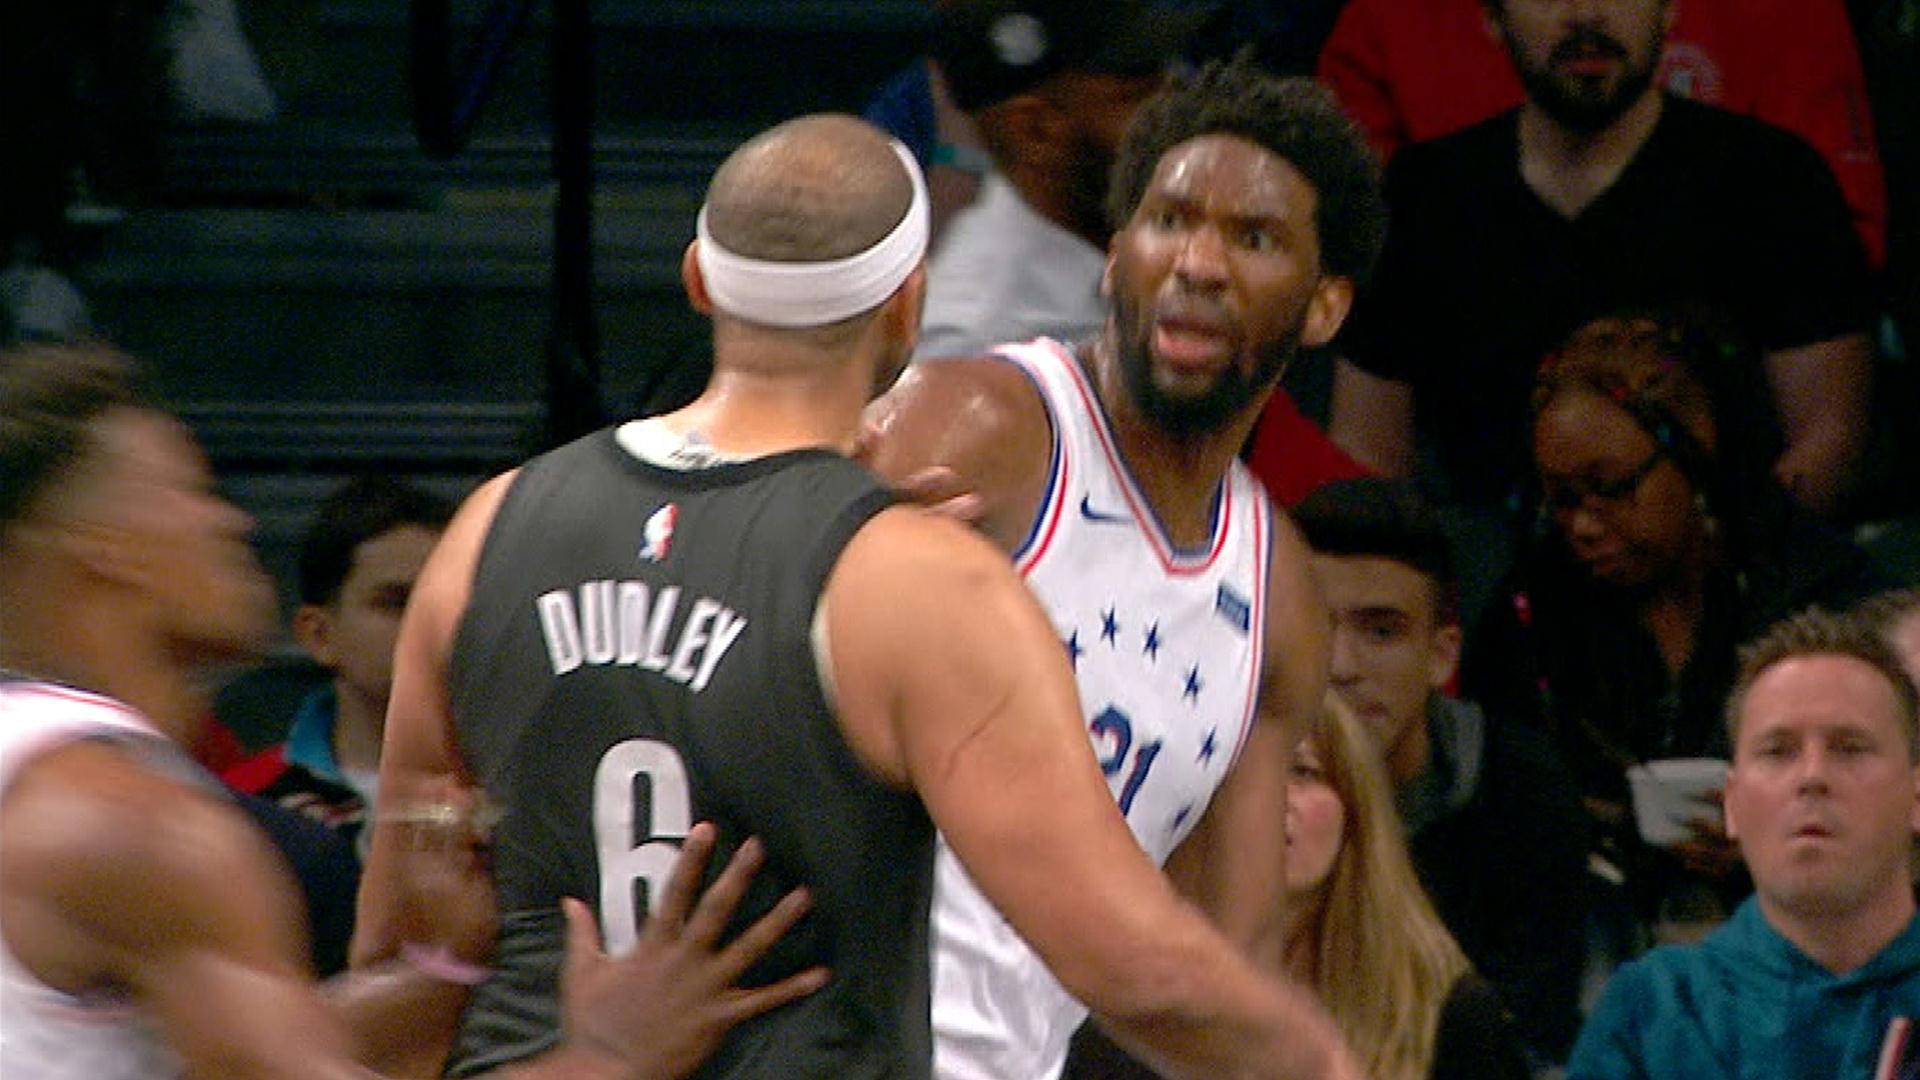 Jared Dudley regrets not getting his money's worth on shove on Joel Embiid